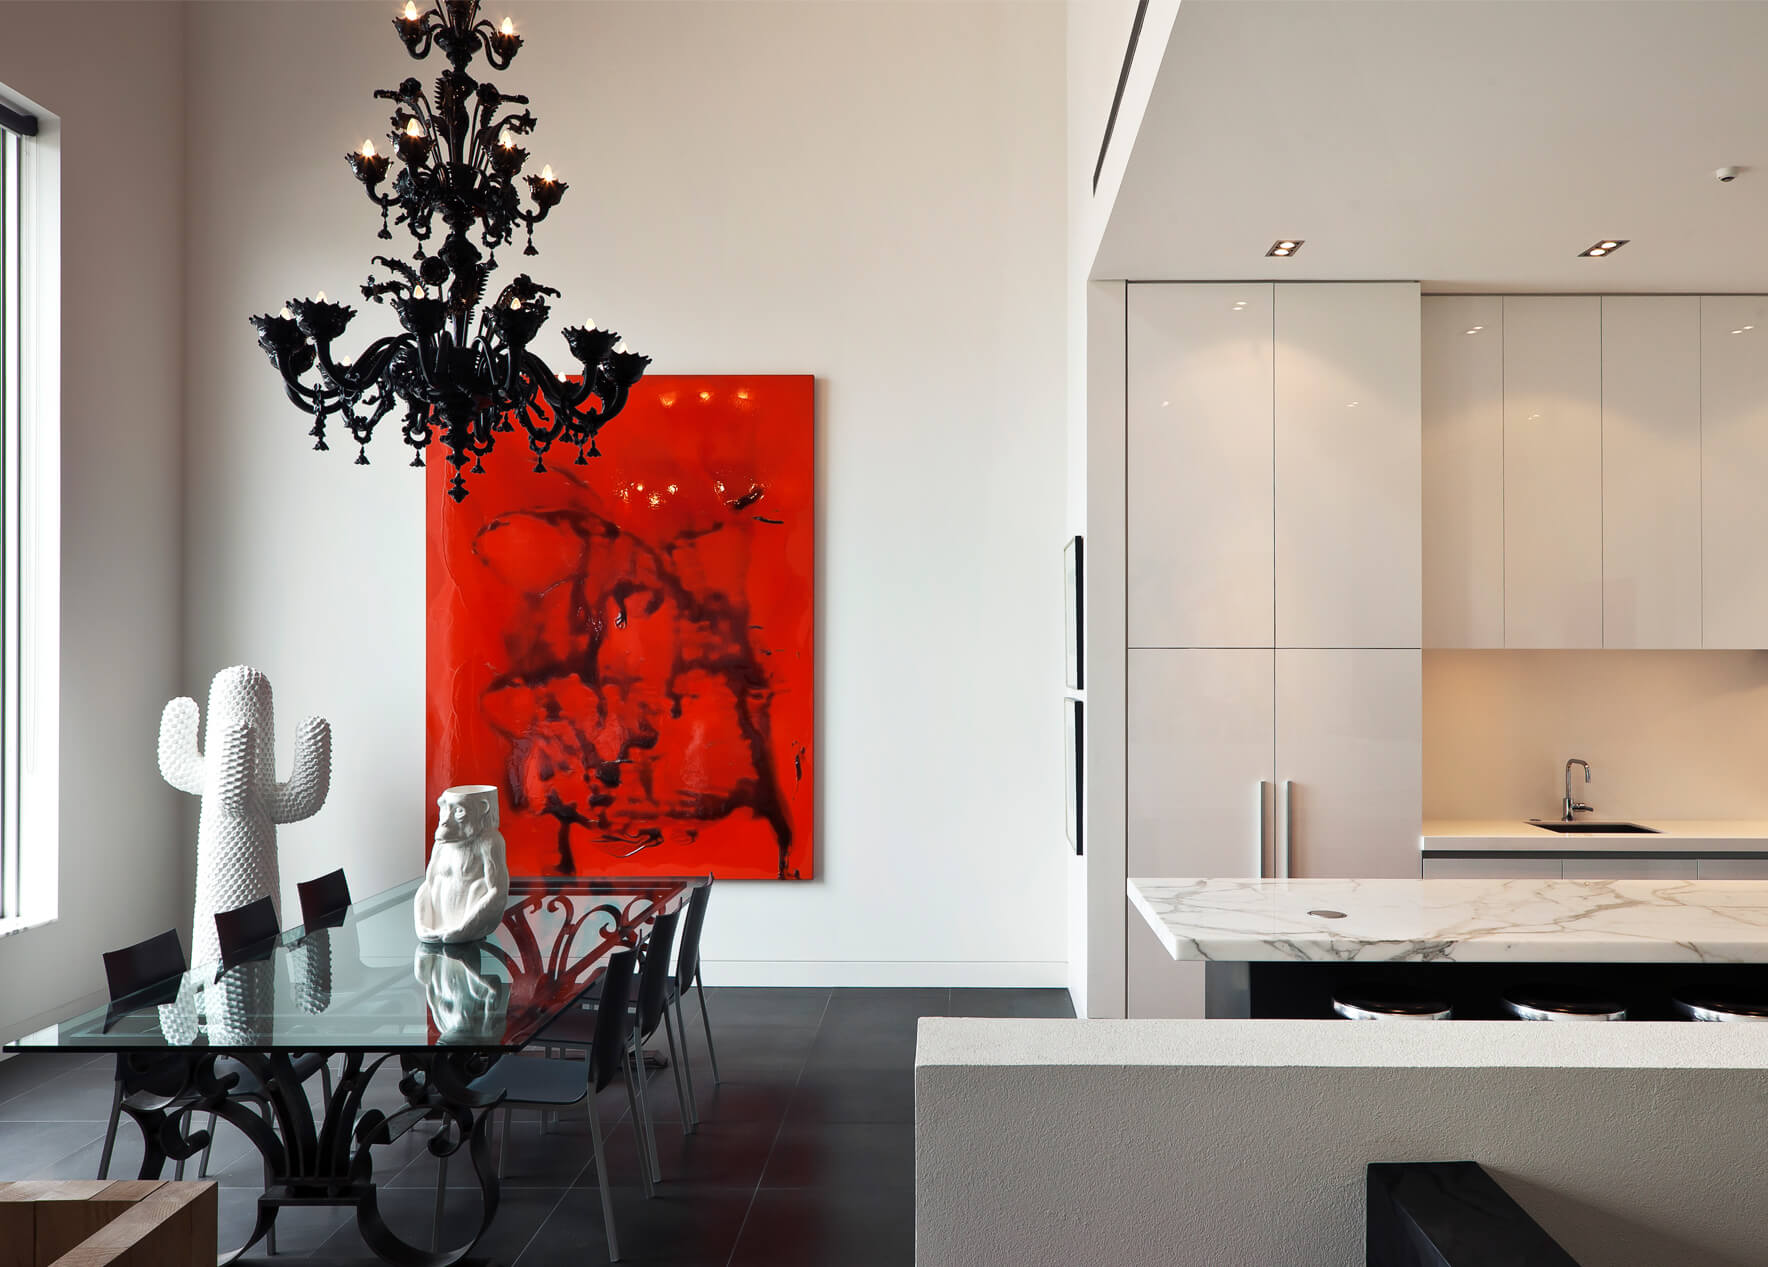 New zealand multi use building dhd architecture for Multi use dining room ideas